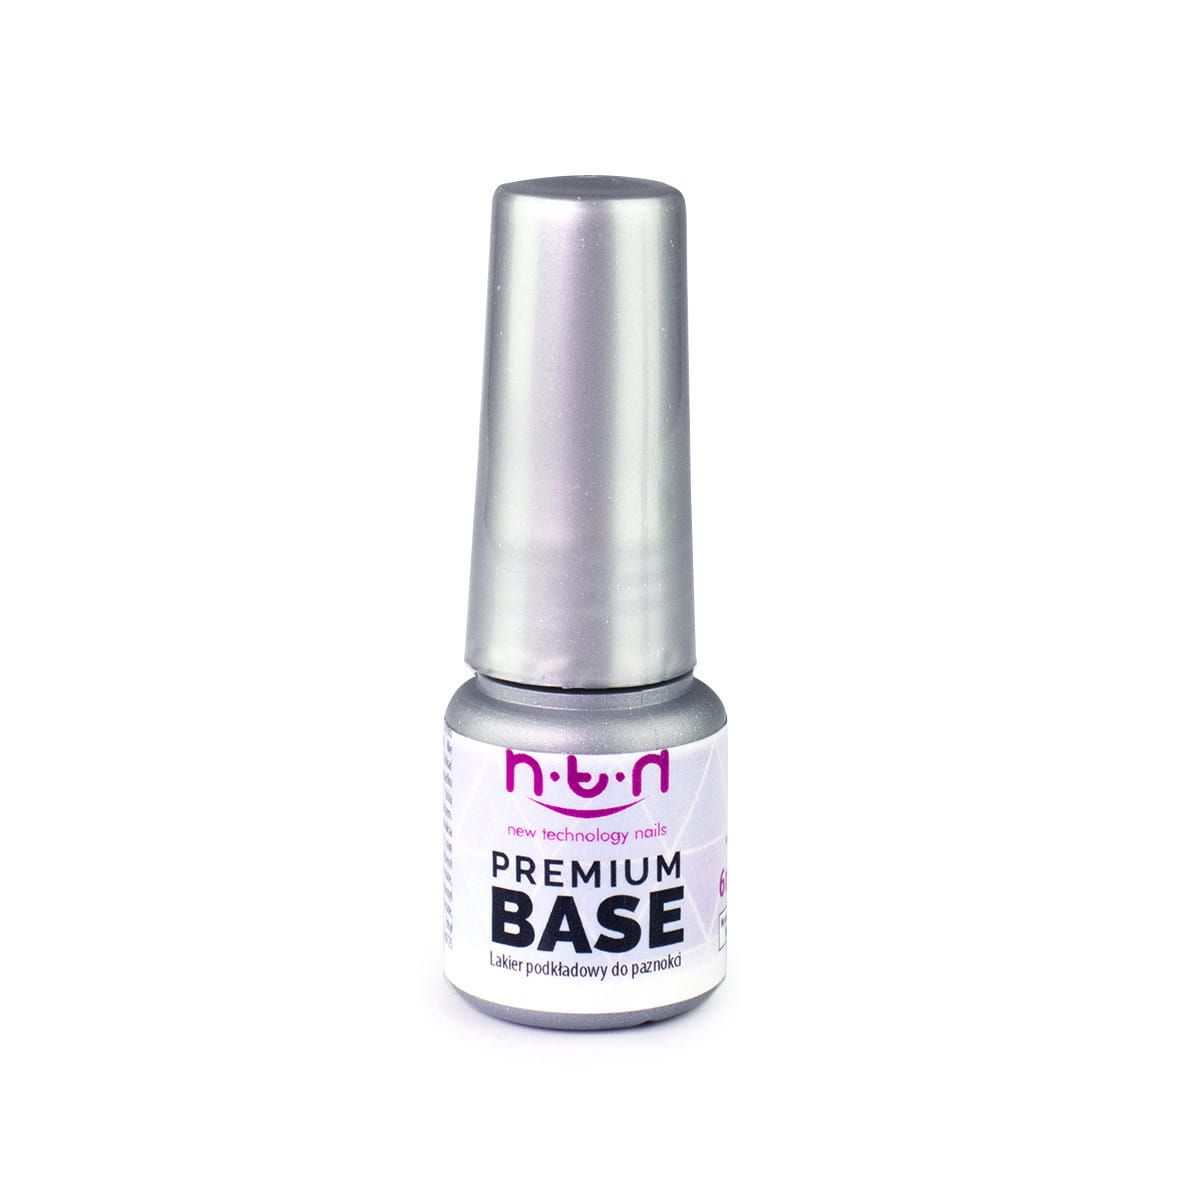 BASE NTN Premium gel 6ml